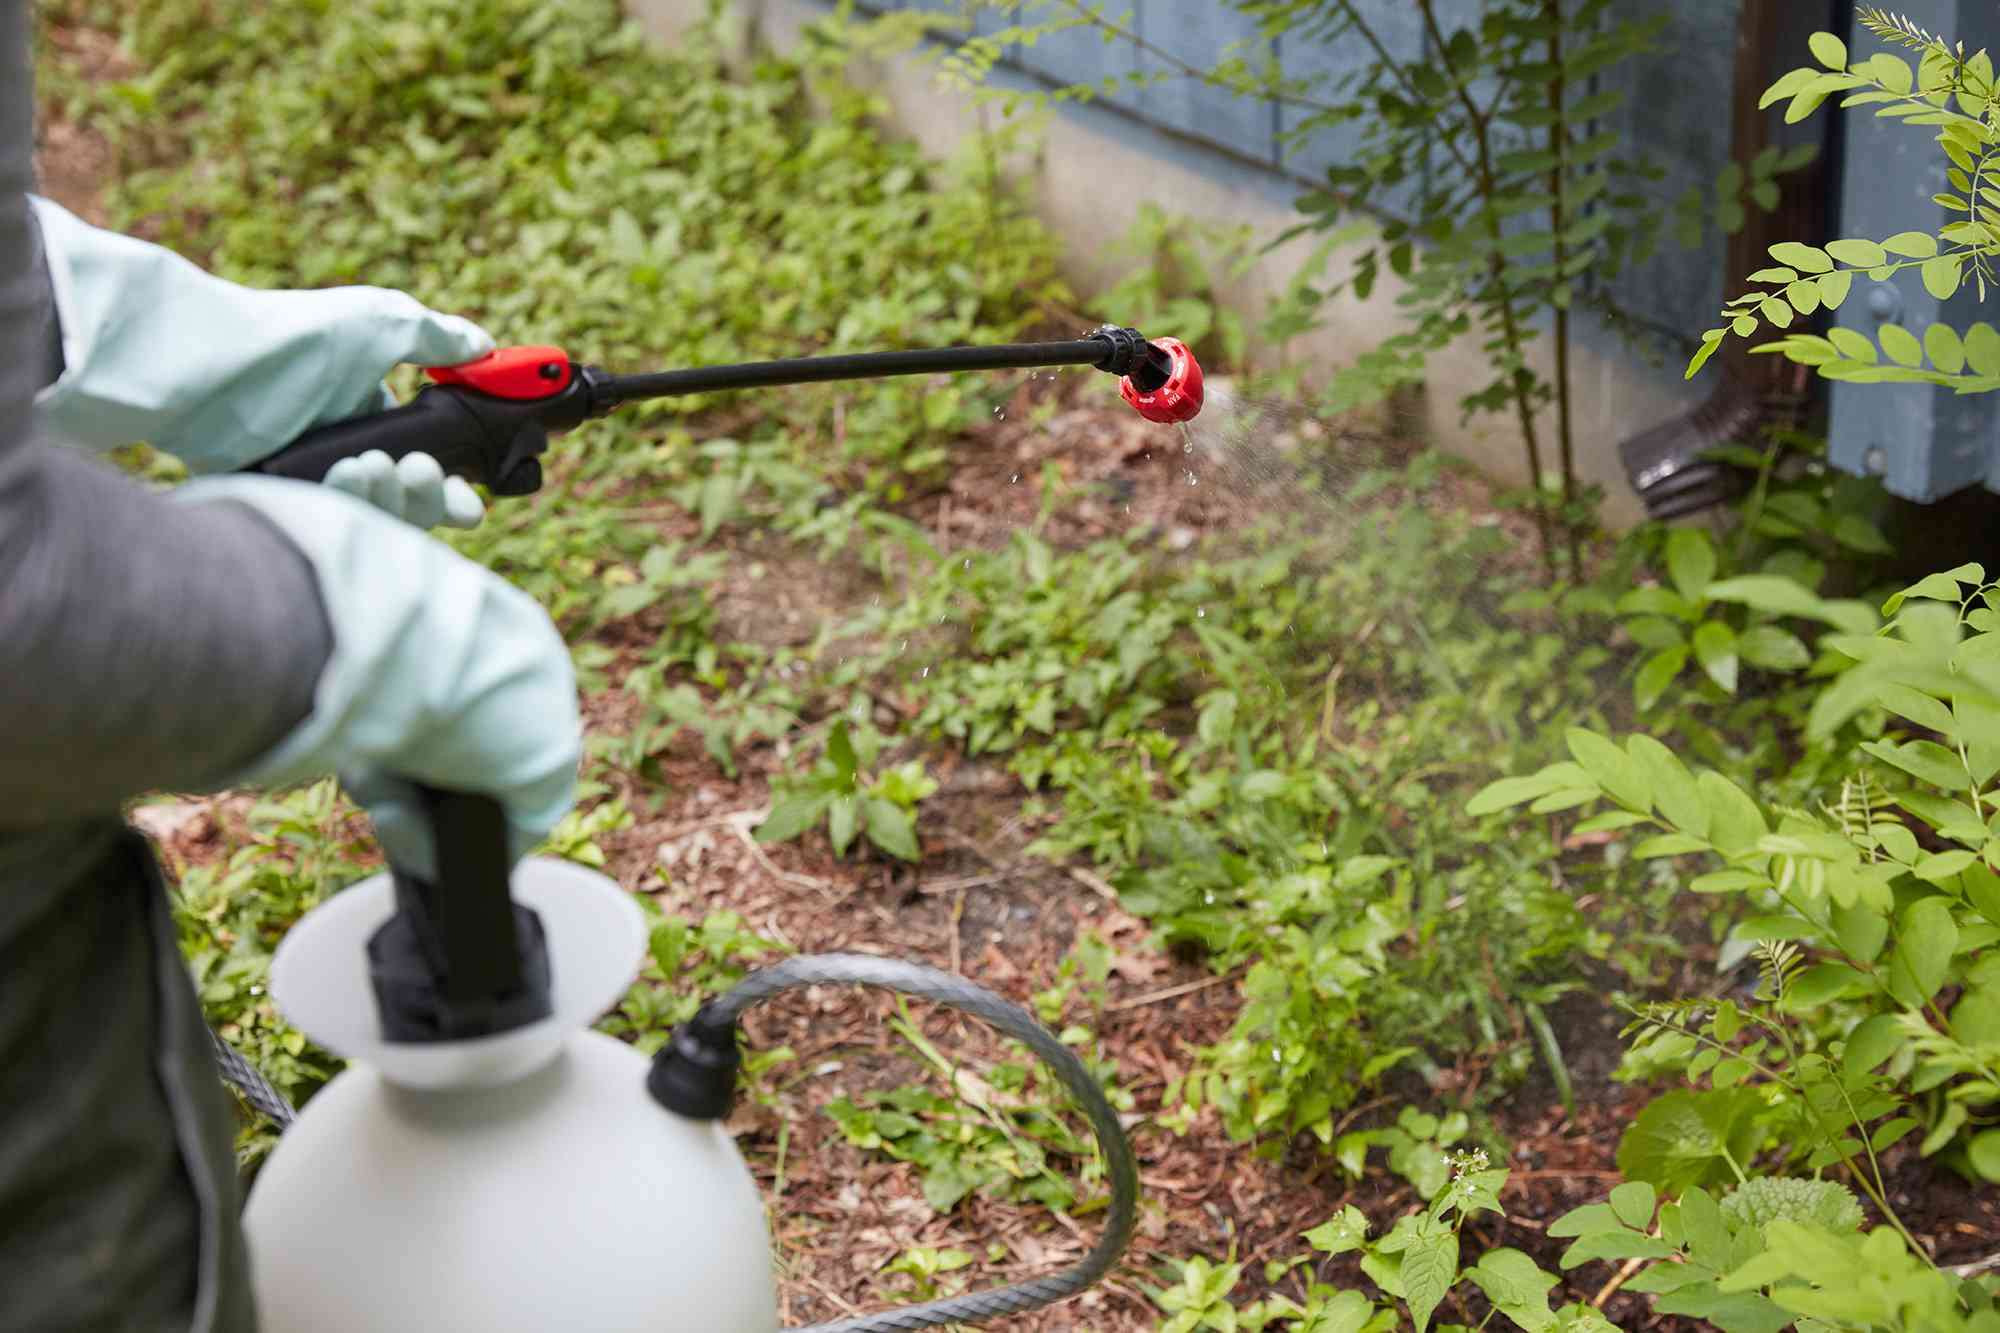 Chemical weed killer sprayed over poison ivy top growth with gloves